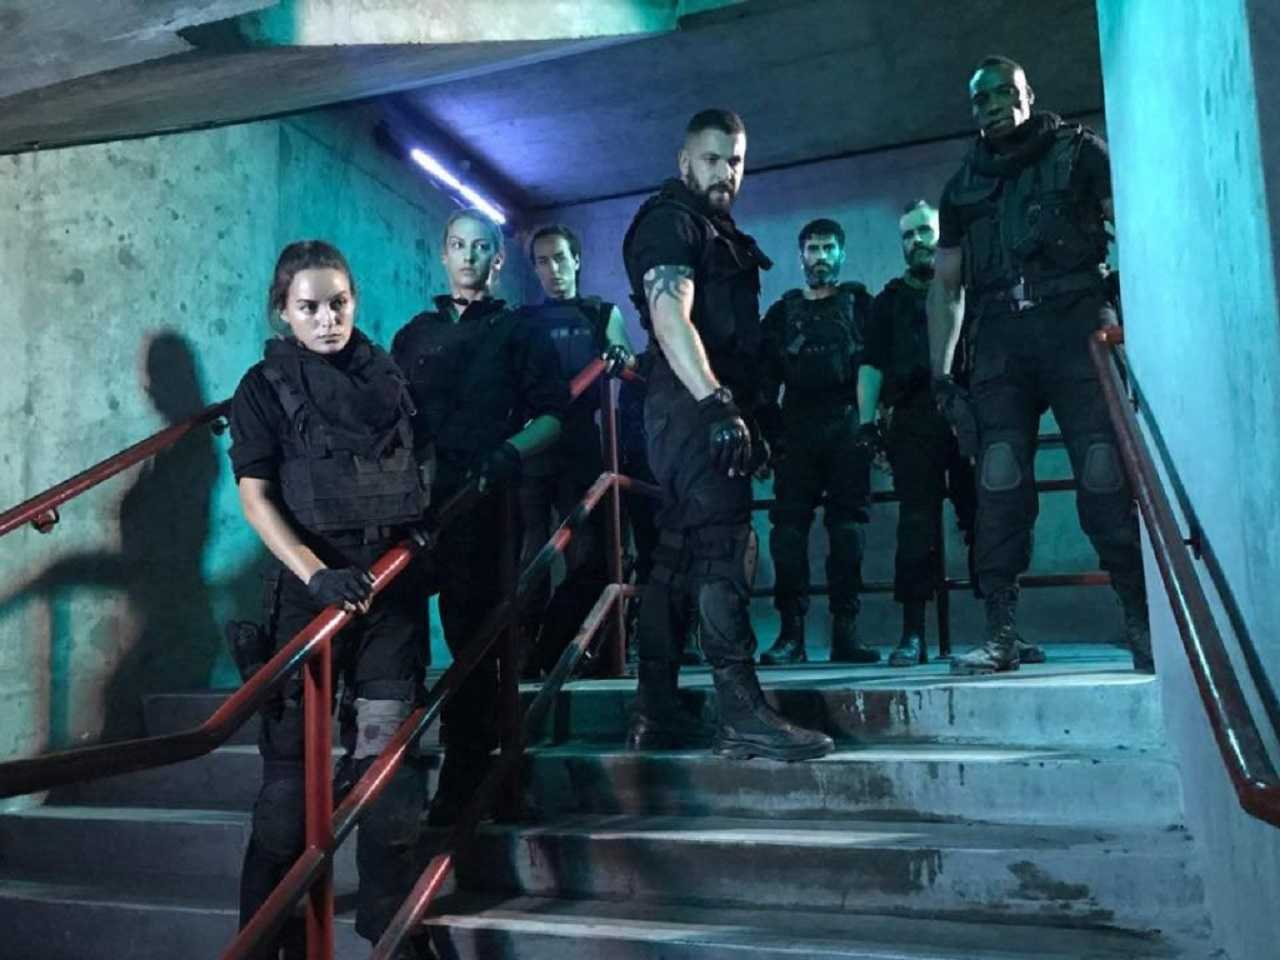 Unit of soldiers - Sophie Austin, Alana Wallace, Samantha Schnitzler, Shayne Ward, Toby Osmond, Spencer Collings and Bentley Kalu in Stairs (2019)